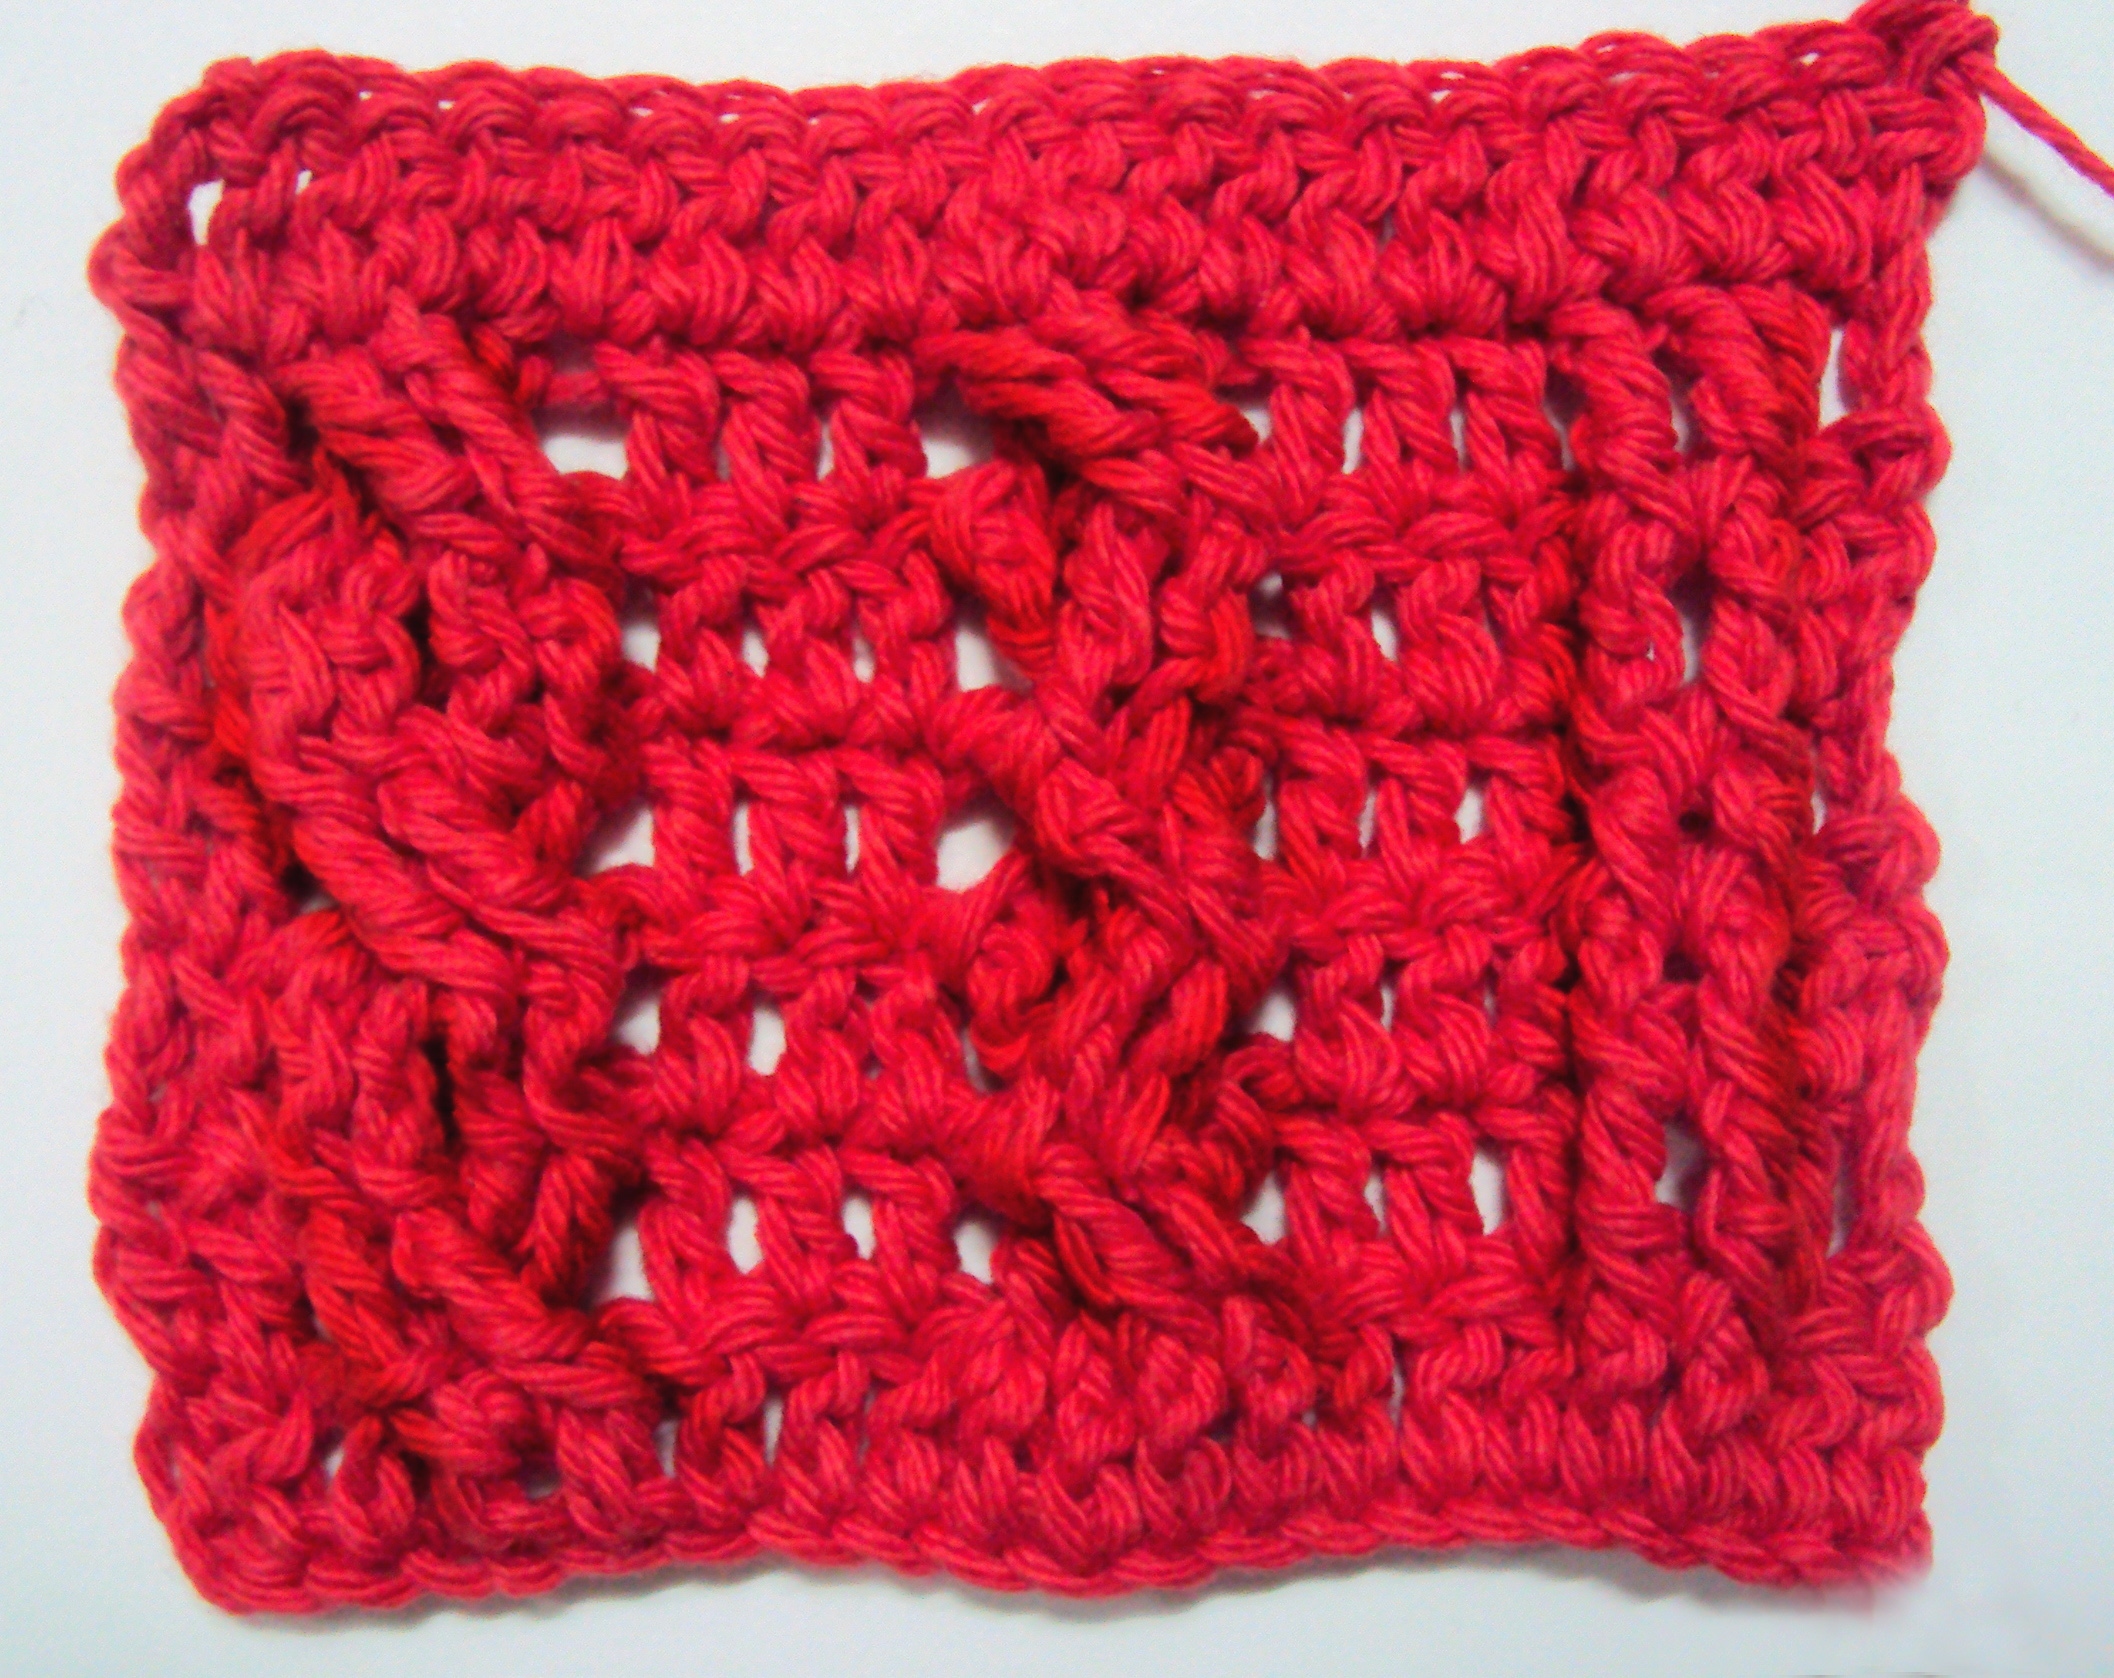 Crochet : Crochet Spot ? Blog Archive ? How to Crochet: Cable Stitches ...